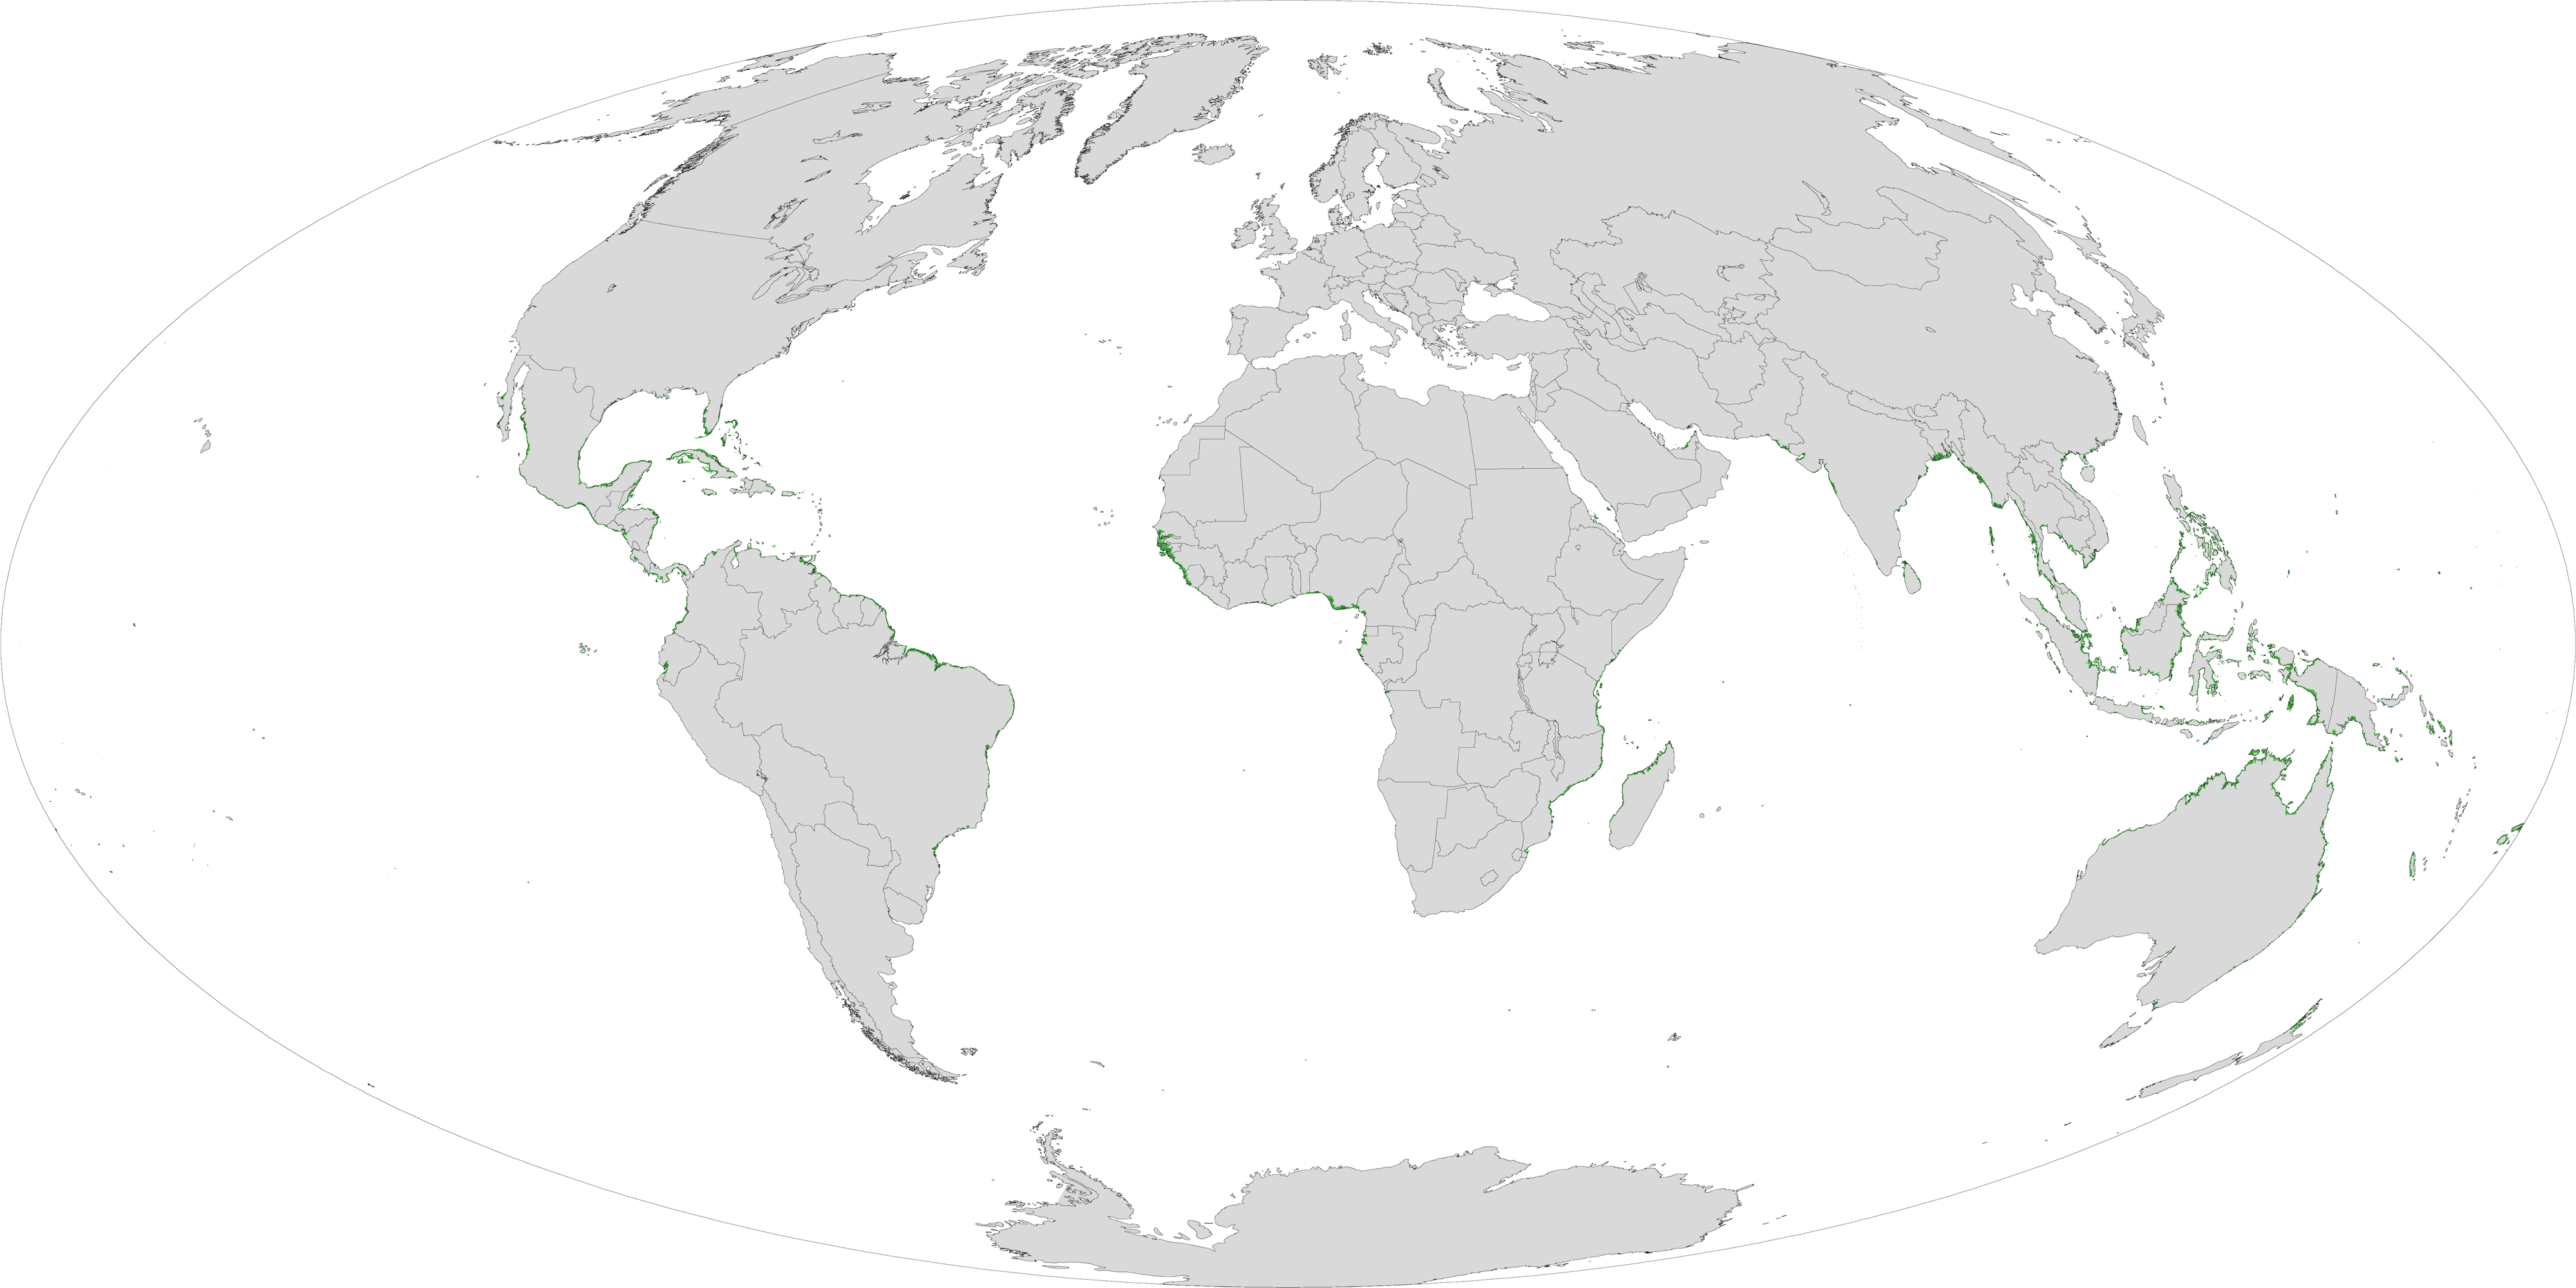 Map shows global mangrove forests distribution by Giri et al.